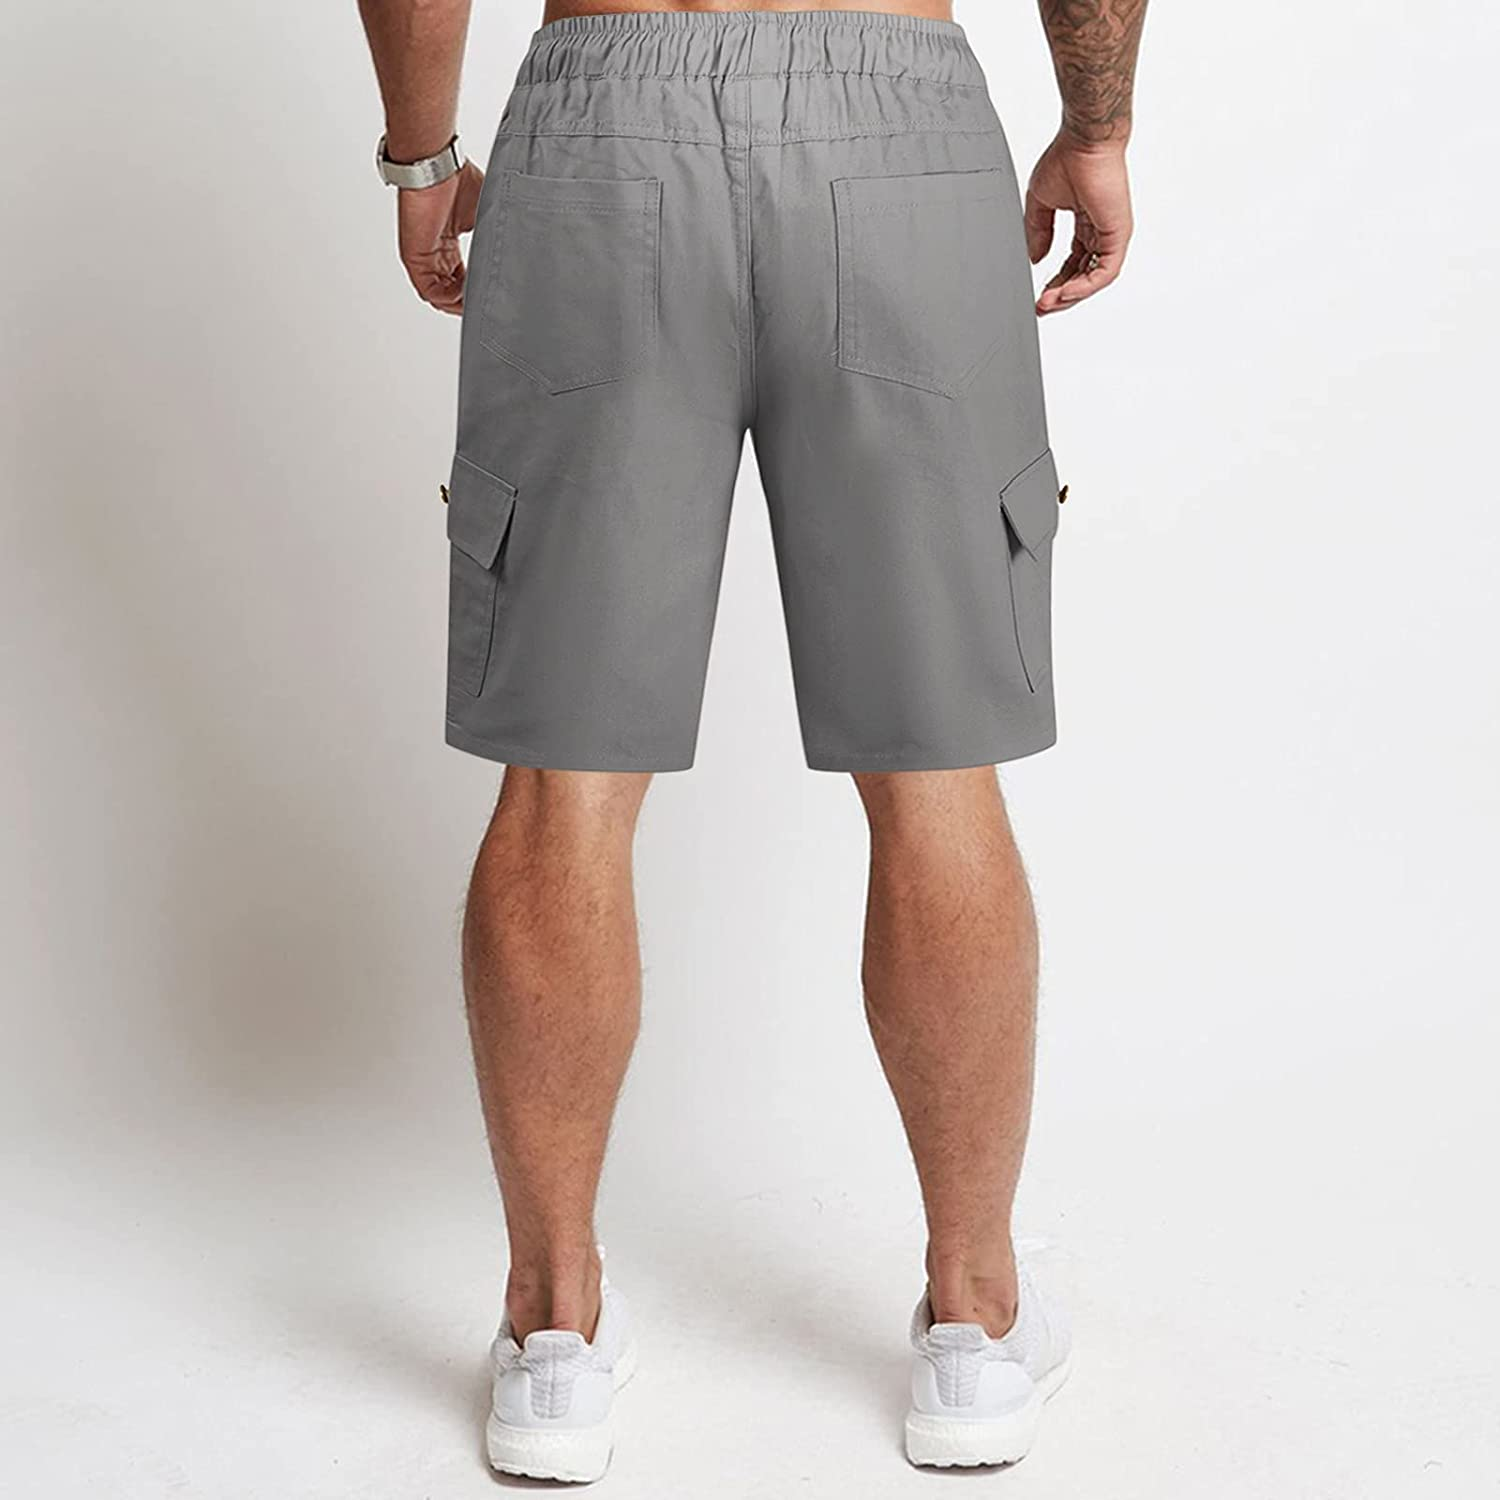 XUNFUN Men's Casual Workout Shorts Classic Fit Drawstring Elastic Waist Summer Beach Swimming Shorts with Pockets